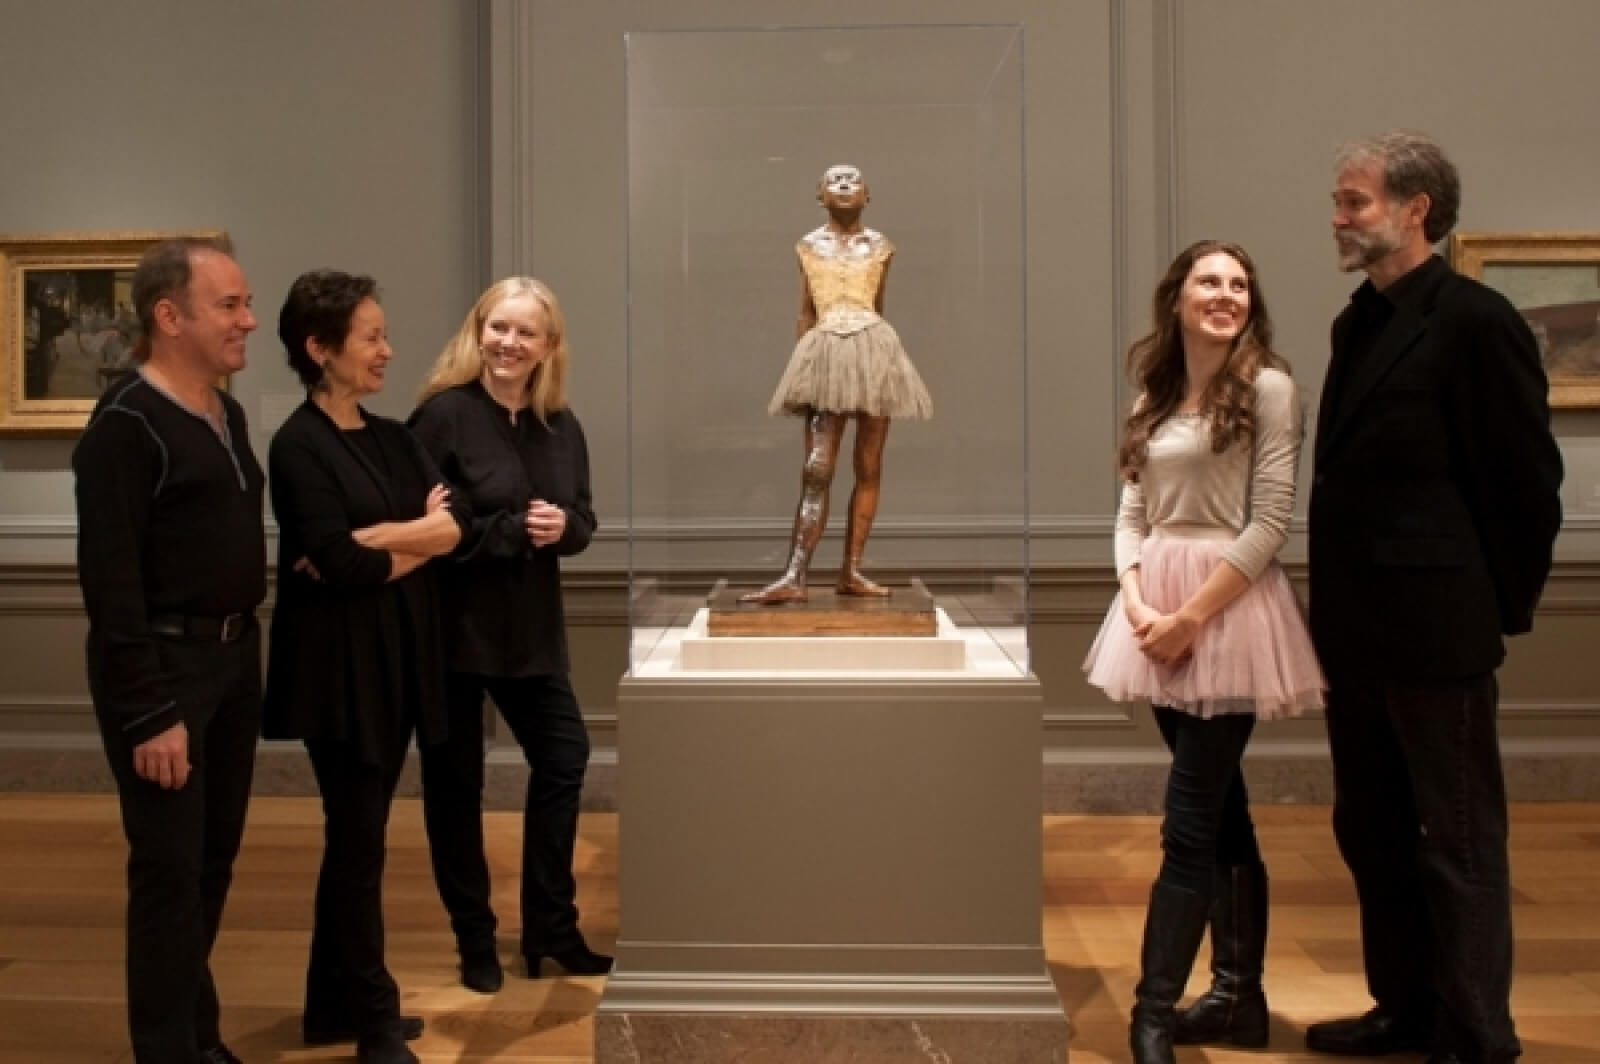 Stephan Flaherty, Lynn Ahrens, Susan Stroman, Tiler Peck, and Boyd Gaines visit Degas sculpture at the National Gallery in Washington DC.